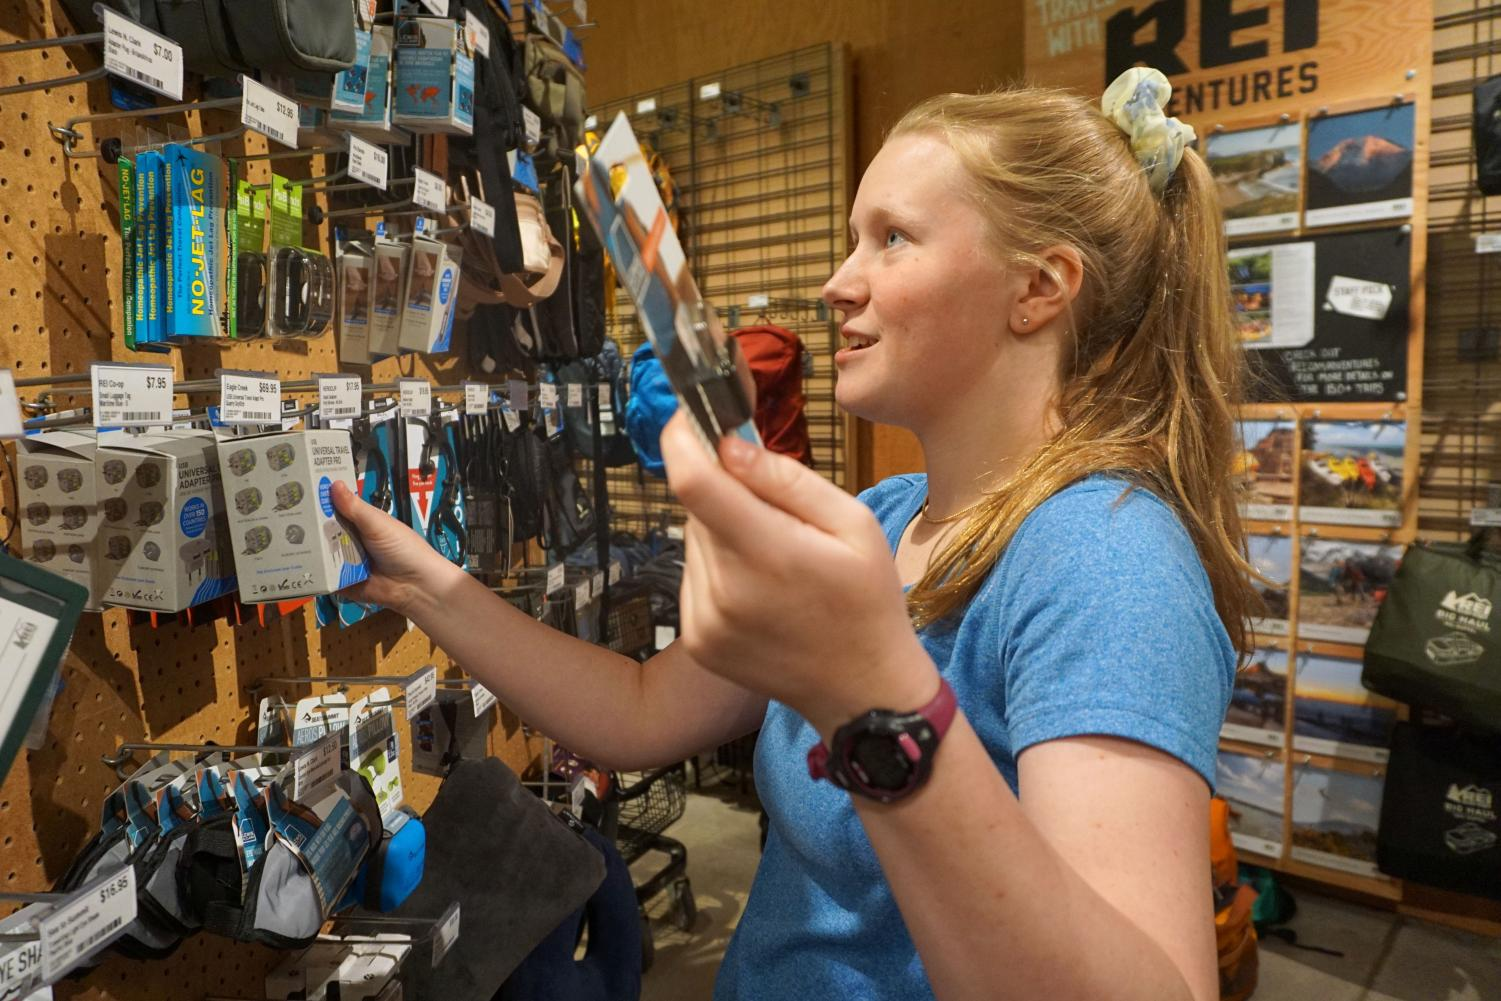 Junior Ellen Poulter shops for supplies at REI for her upcoming hiking trip May 21. Poulter will be hiking the Camino de Santiago in Spain by herself this summer over the course of six weeks.